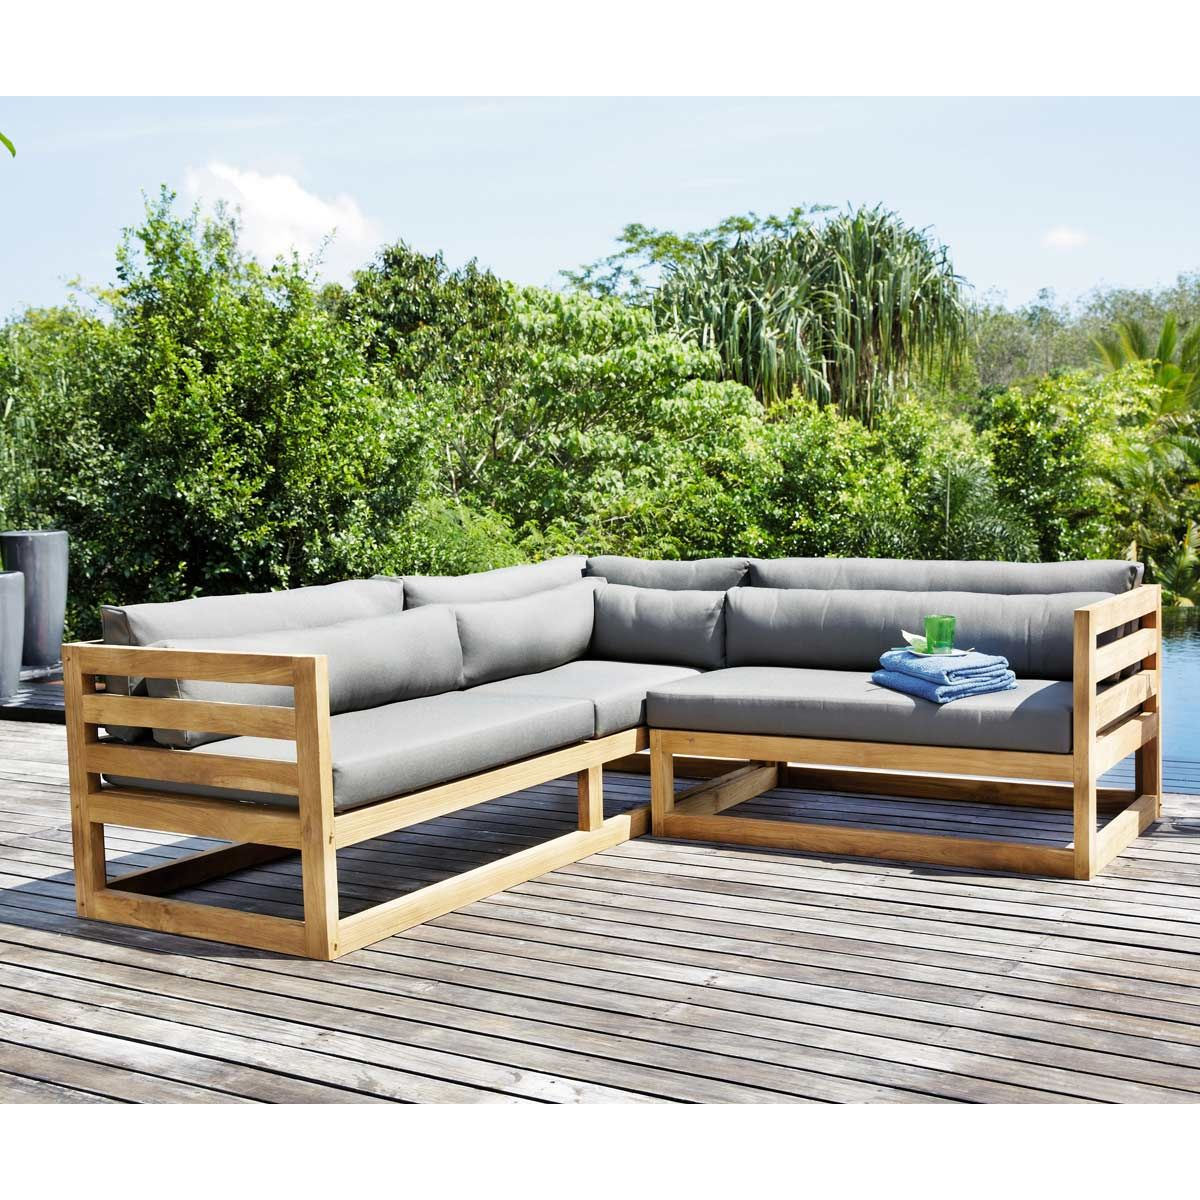 Teak Outdoor Corner Sofa Charcoal Grey Cyclades